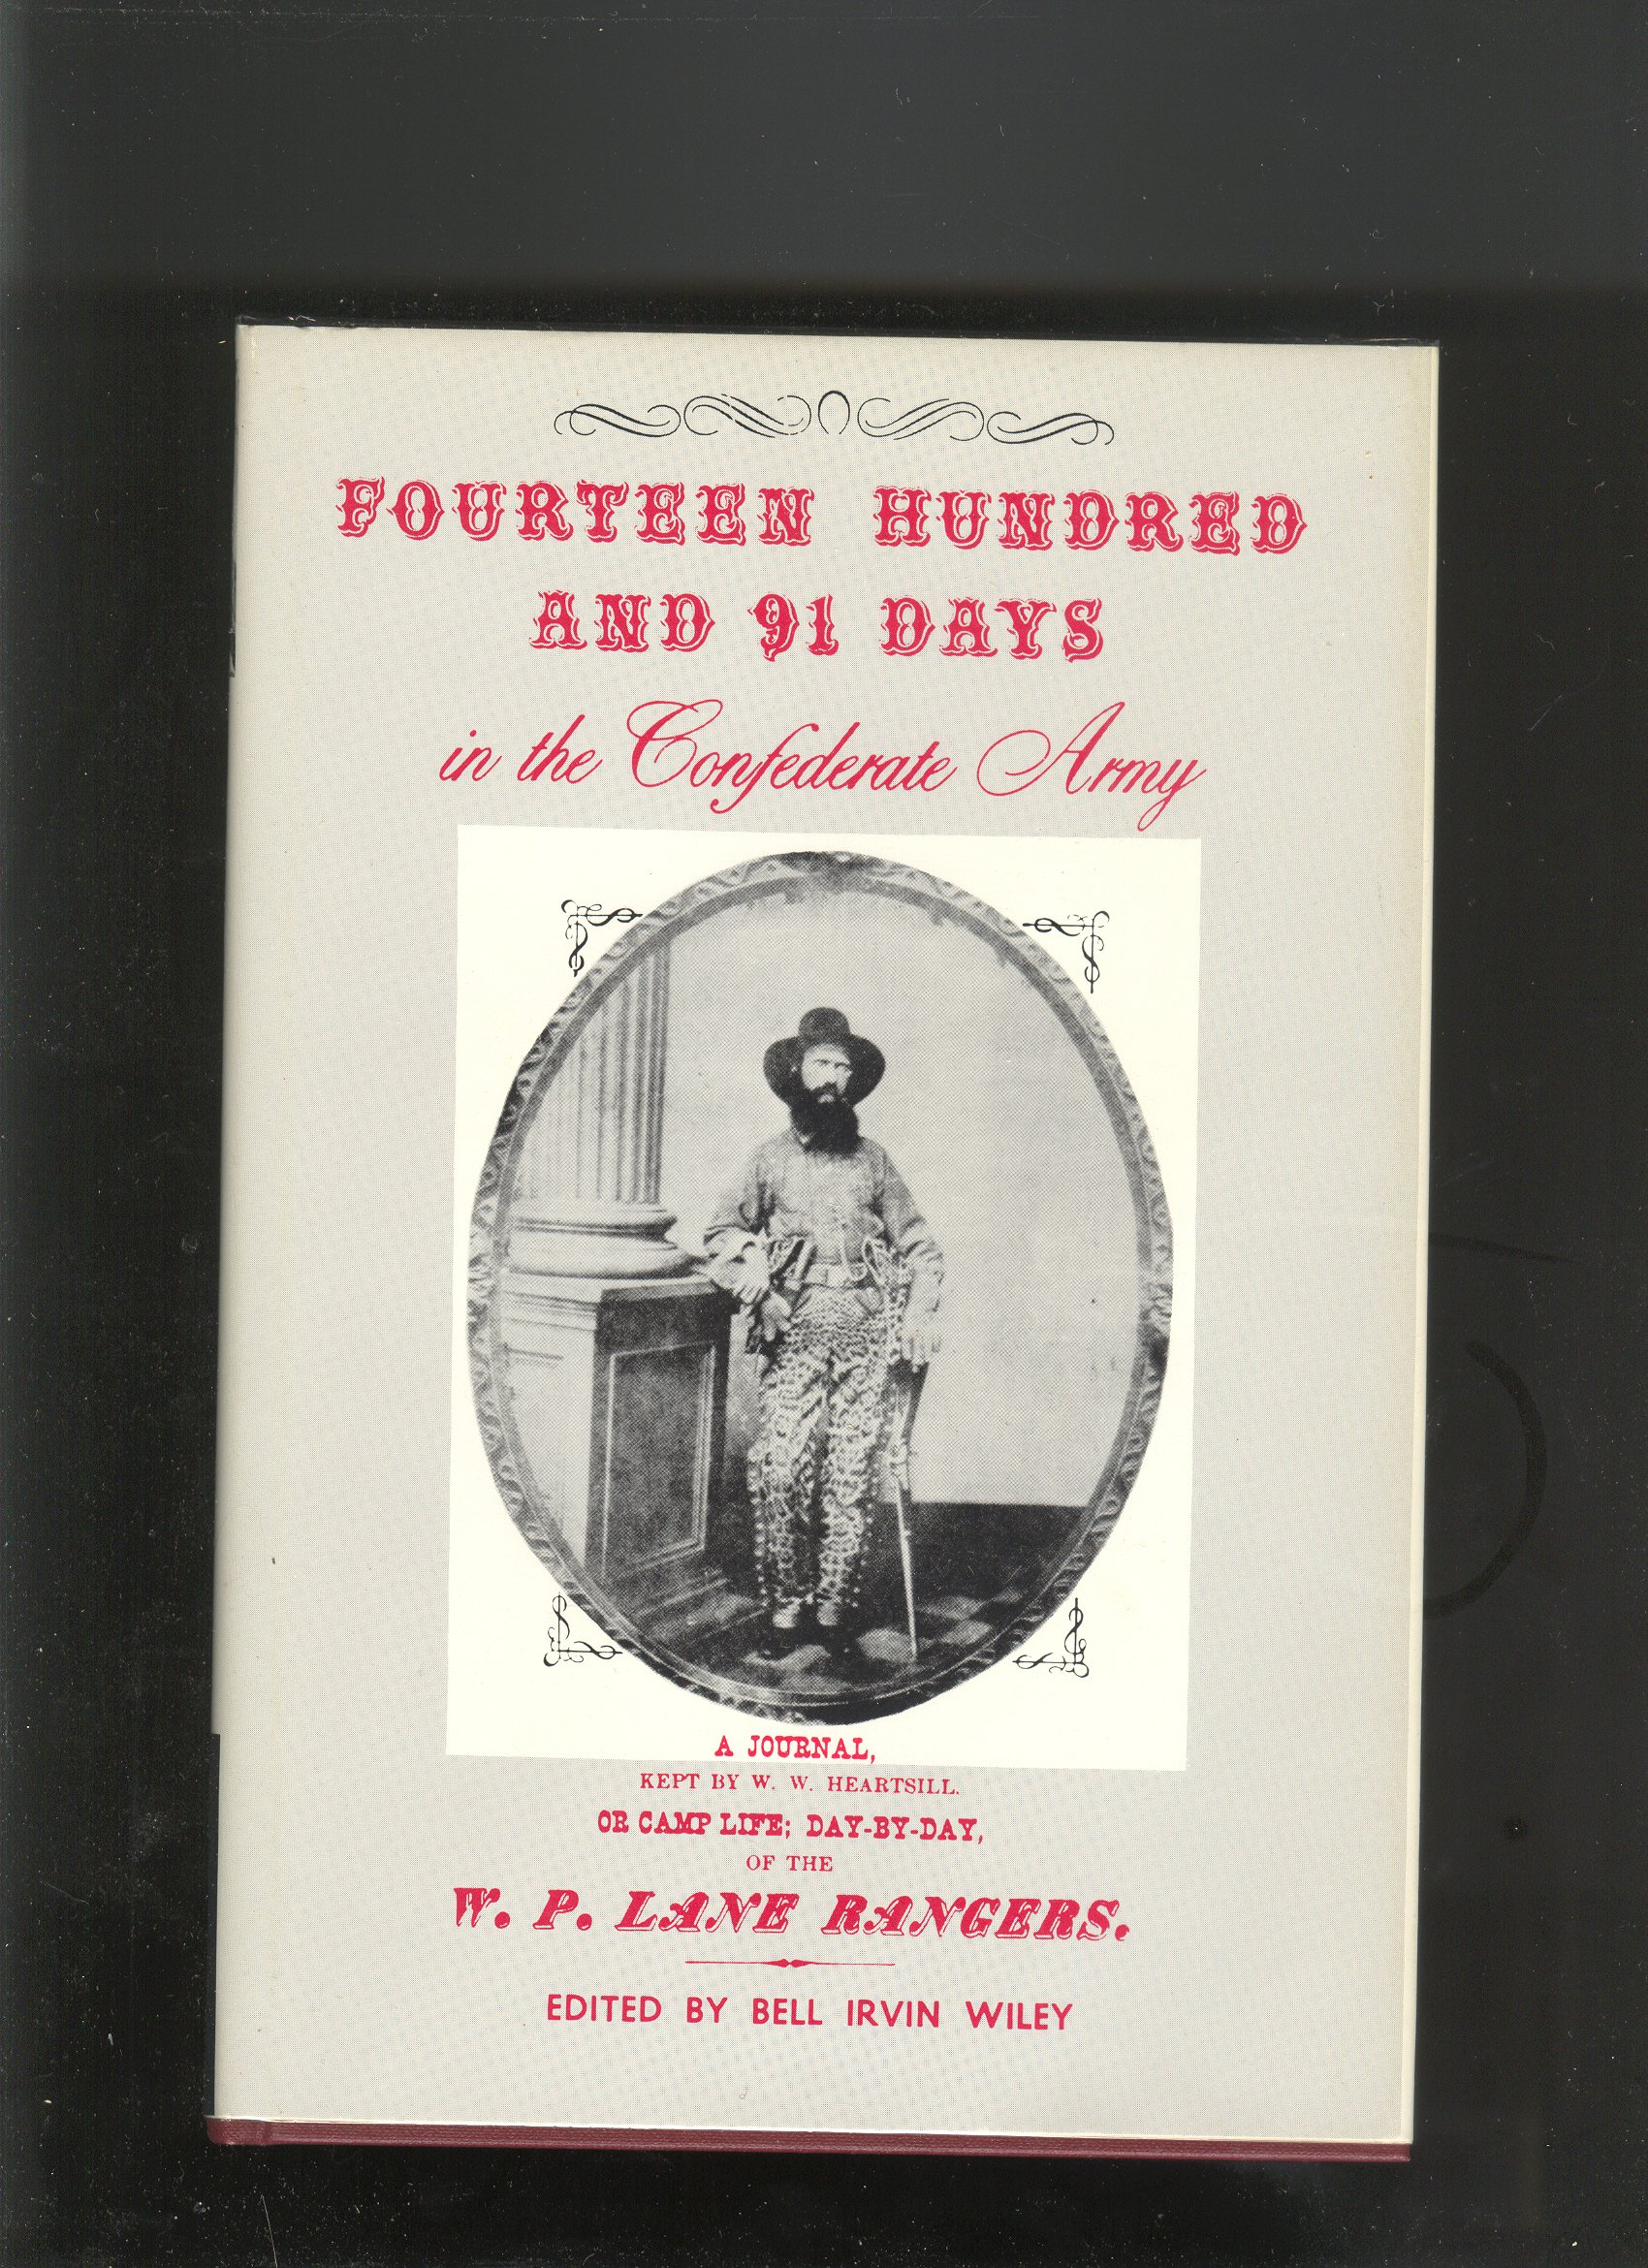 Fourteen hundred and 91 days in the Confederate Army: A journal kept by W.W. Heartsill, or Camp life, day by day of the W.P. Lane Rangers from April 19, 1861 to May 20, 1865